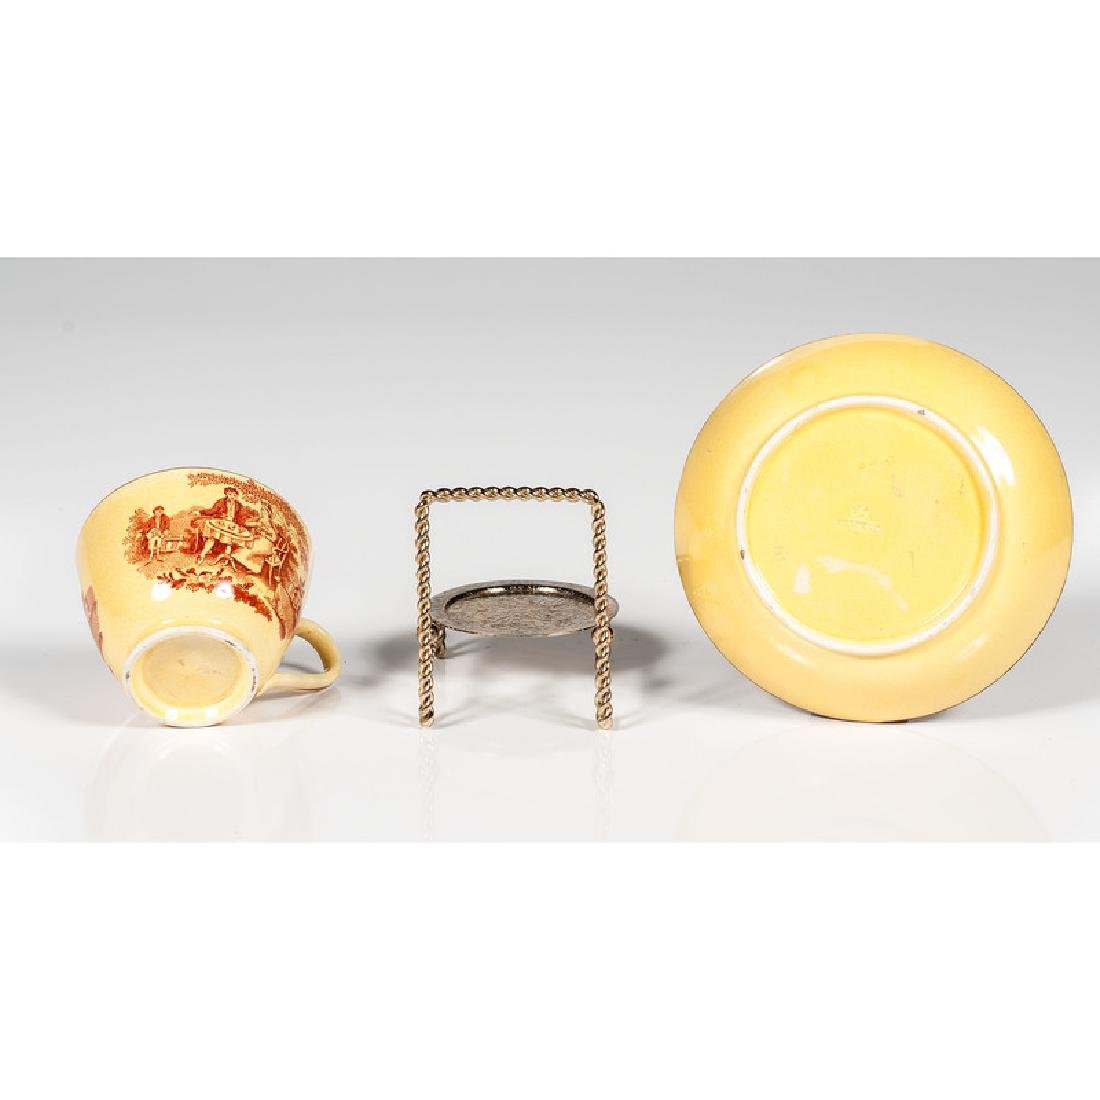 Canary Transfer Cup and Saucer - 3